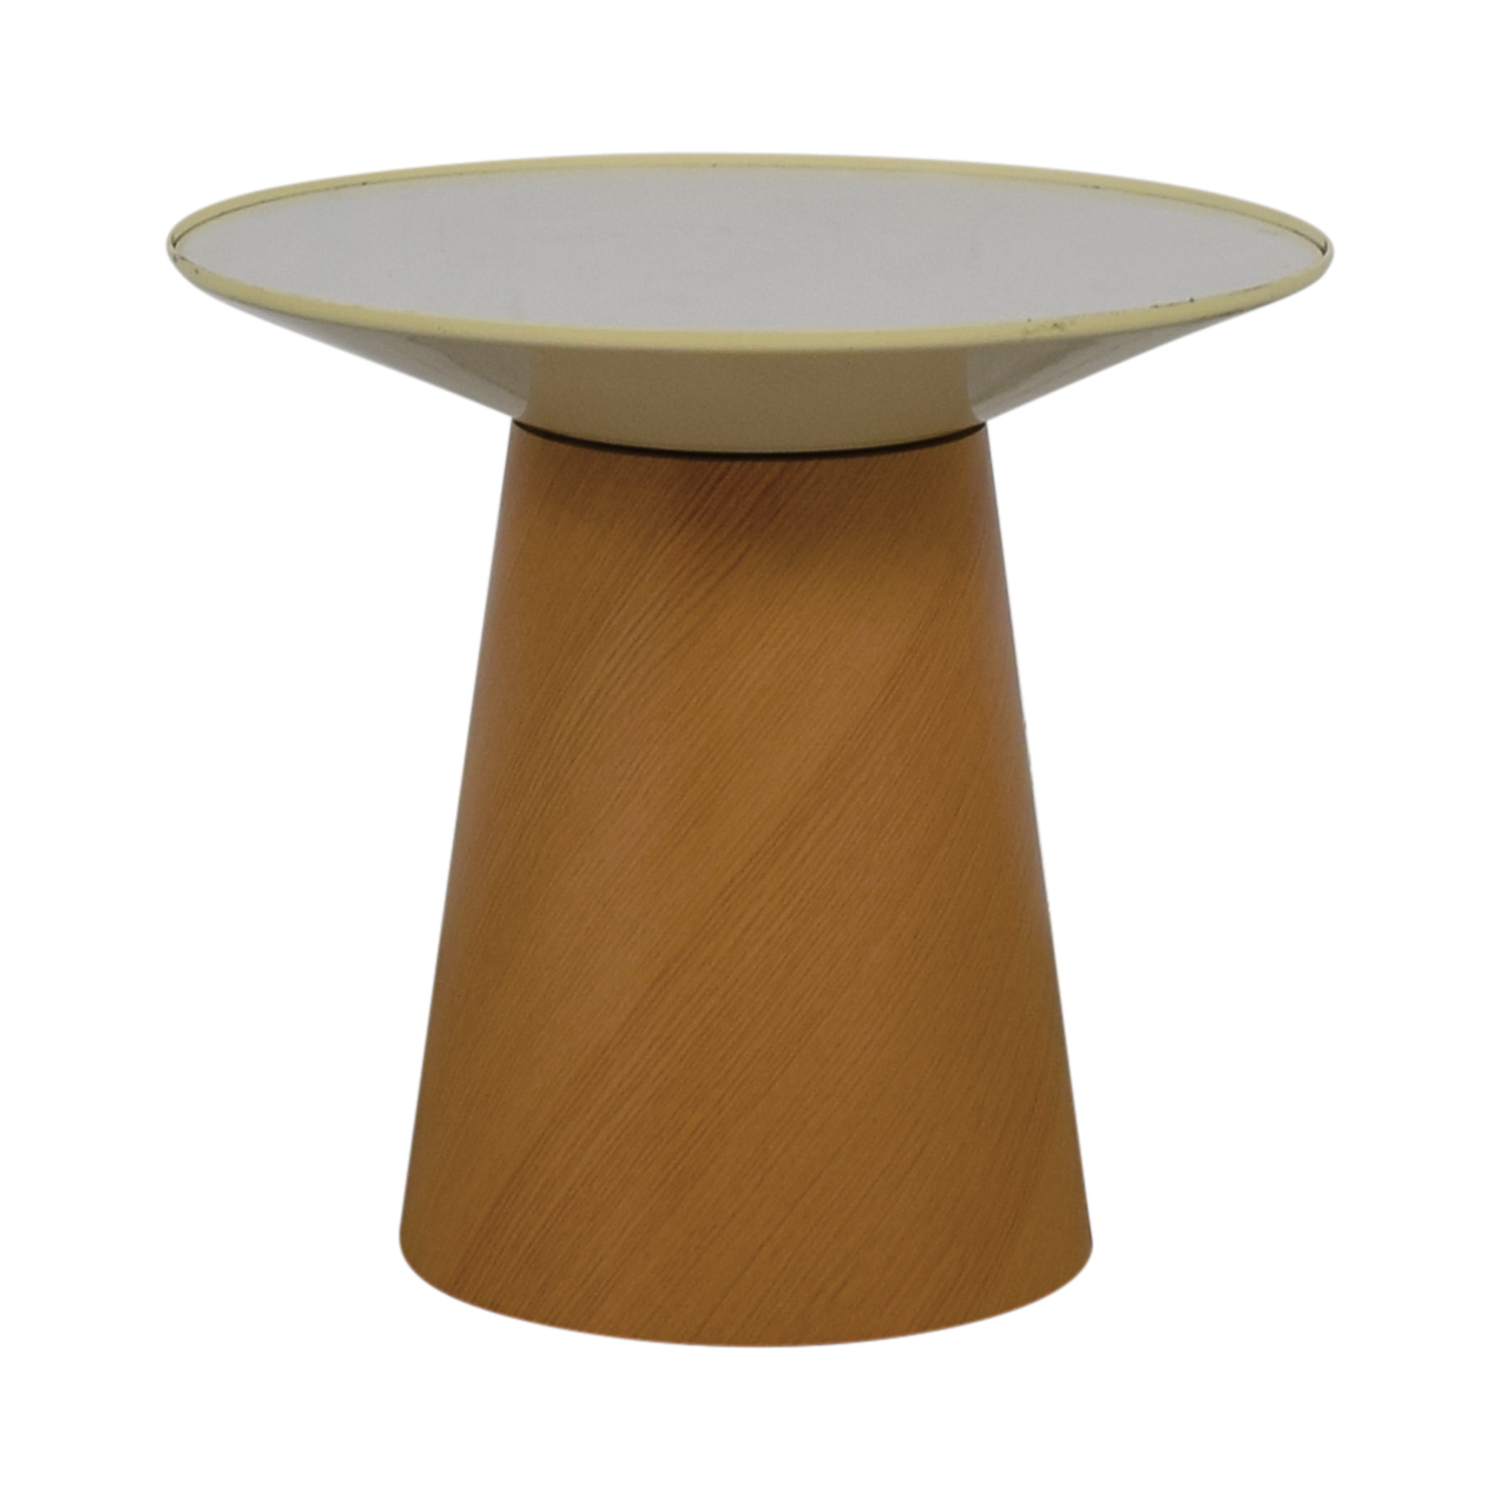 Steelcase Turnstone Steelcase Turnstone Campfire Paper Table in Warm Oak